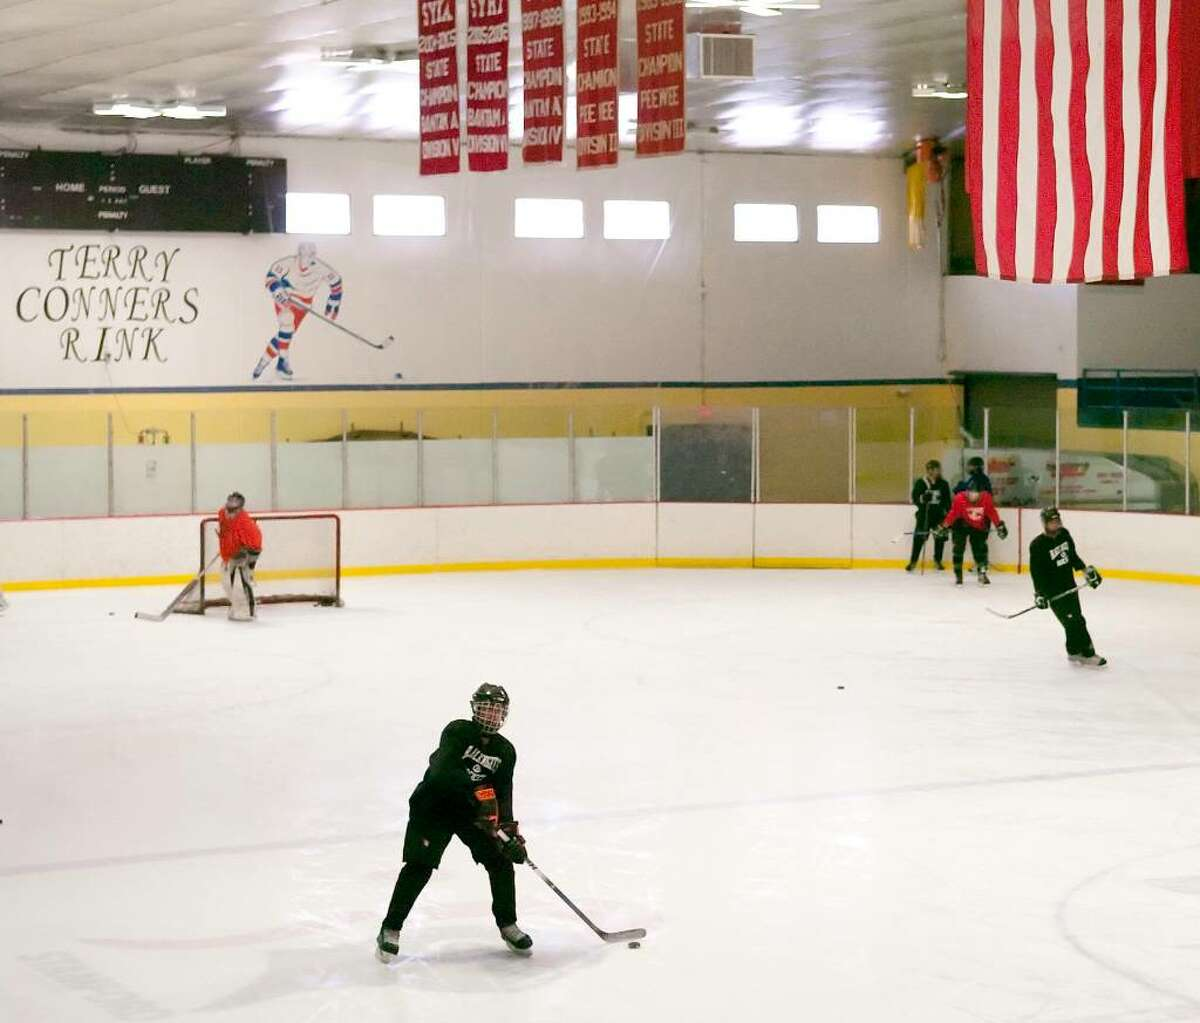 File photo, The Stamford High School hockey team practices at Terry Conners Rink in Stamford, Conn. on Tuesday, Feb. 9, 2010.